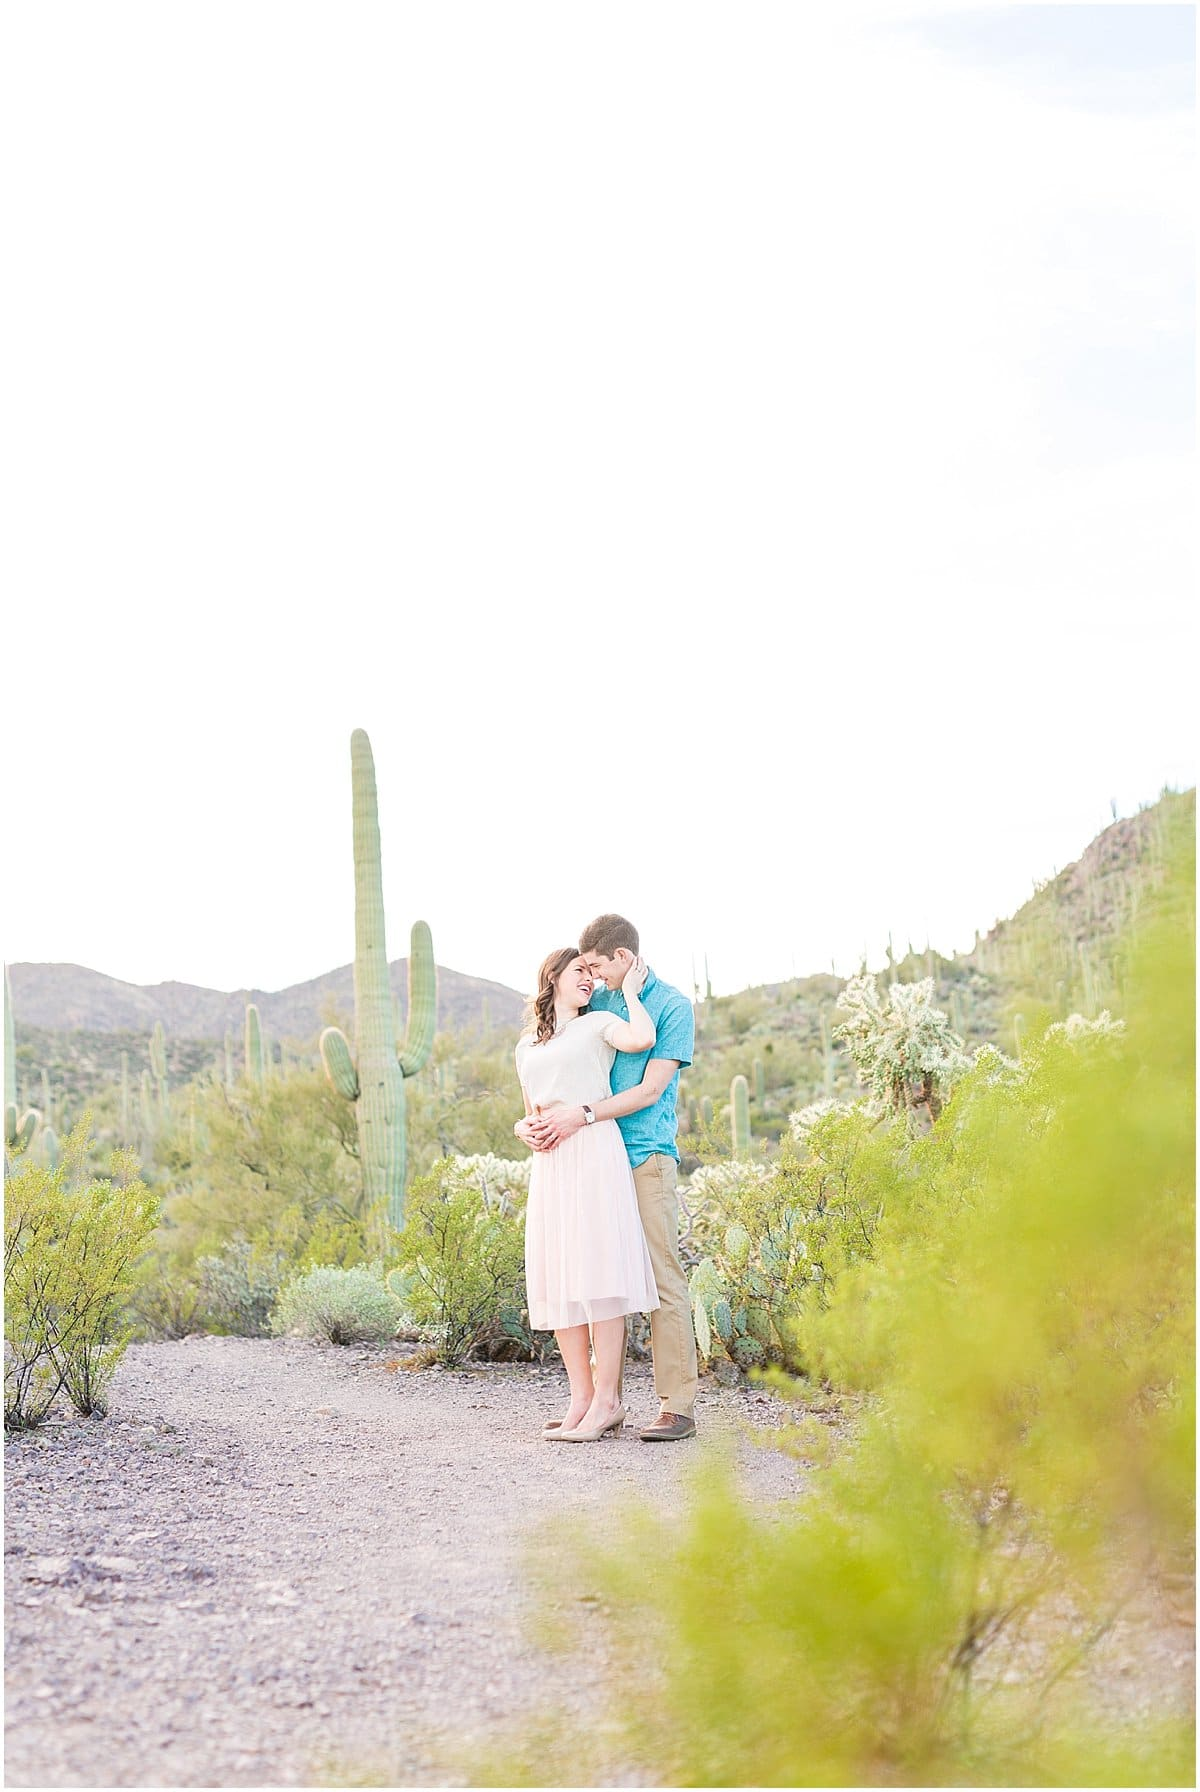 married-arizona-desert-cassidymrphotography_0014